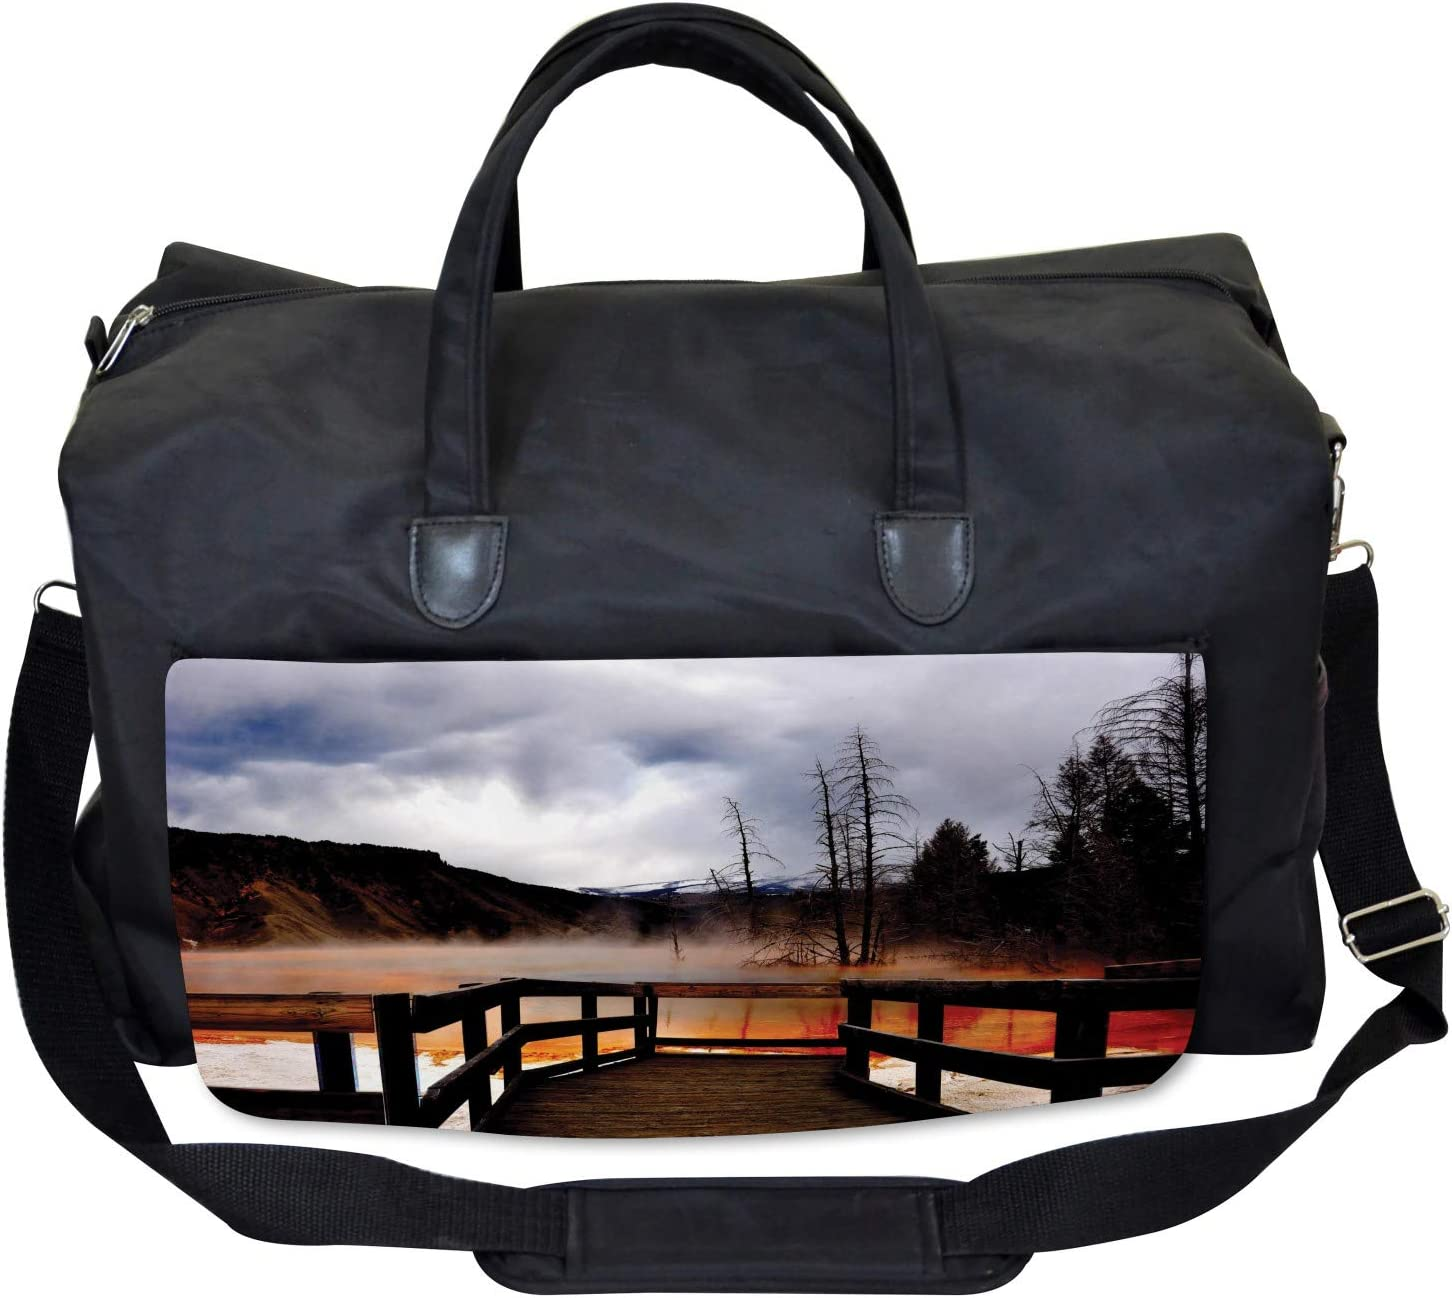 Hot Spring Scenery Large Weekender Carry-on Ambesonne Yellowstone Gym Bag